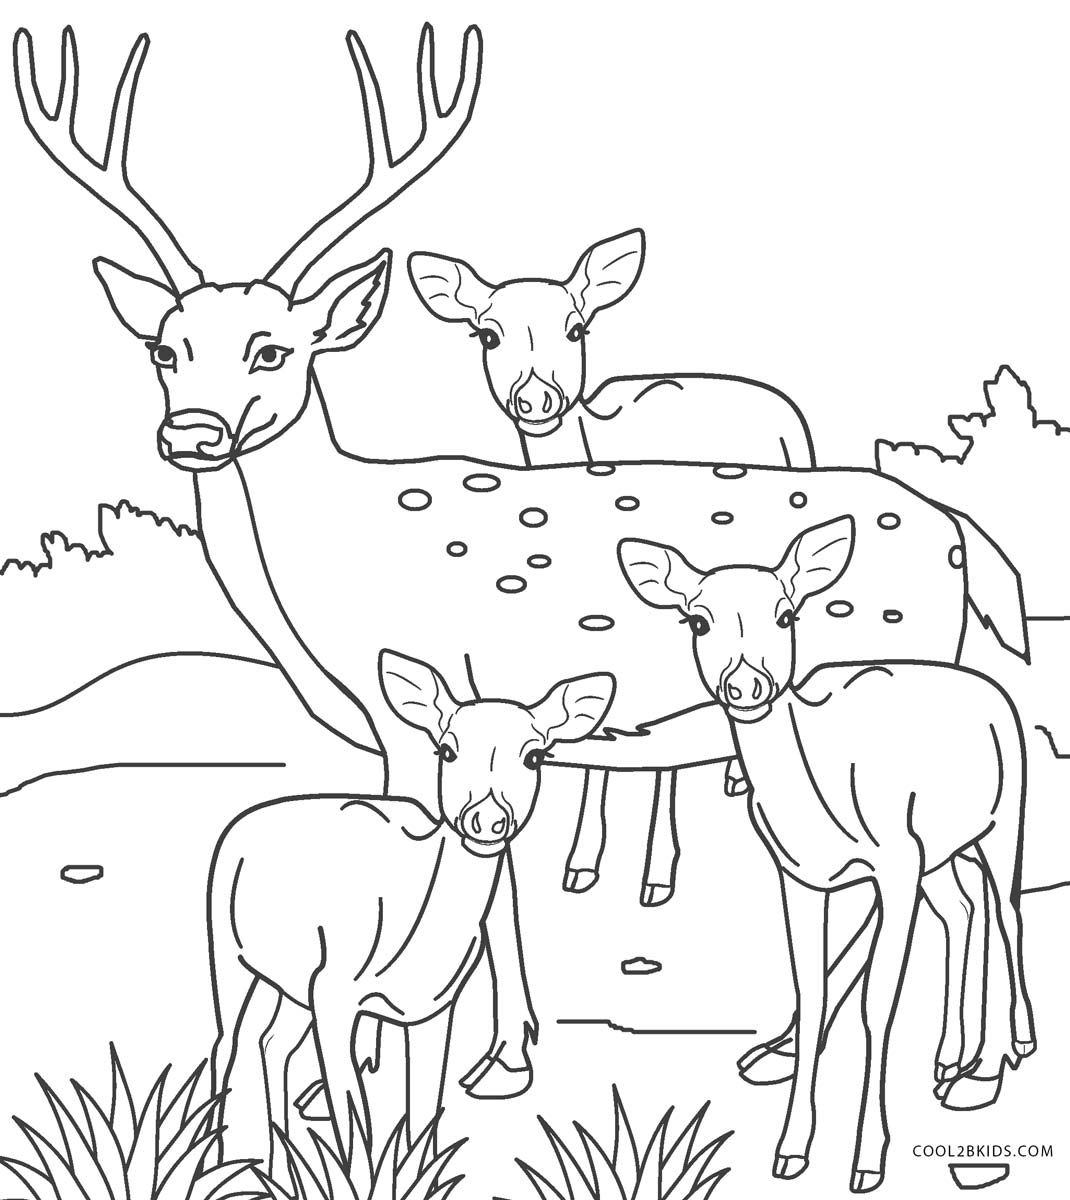 Free Printable Deer Coloring Pages For